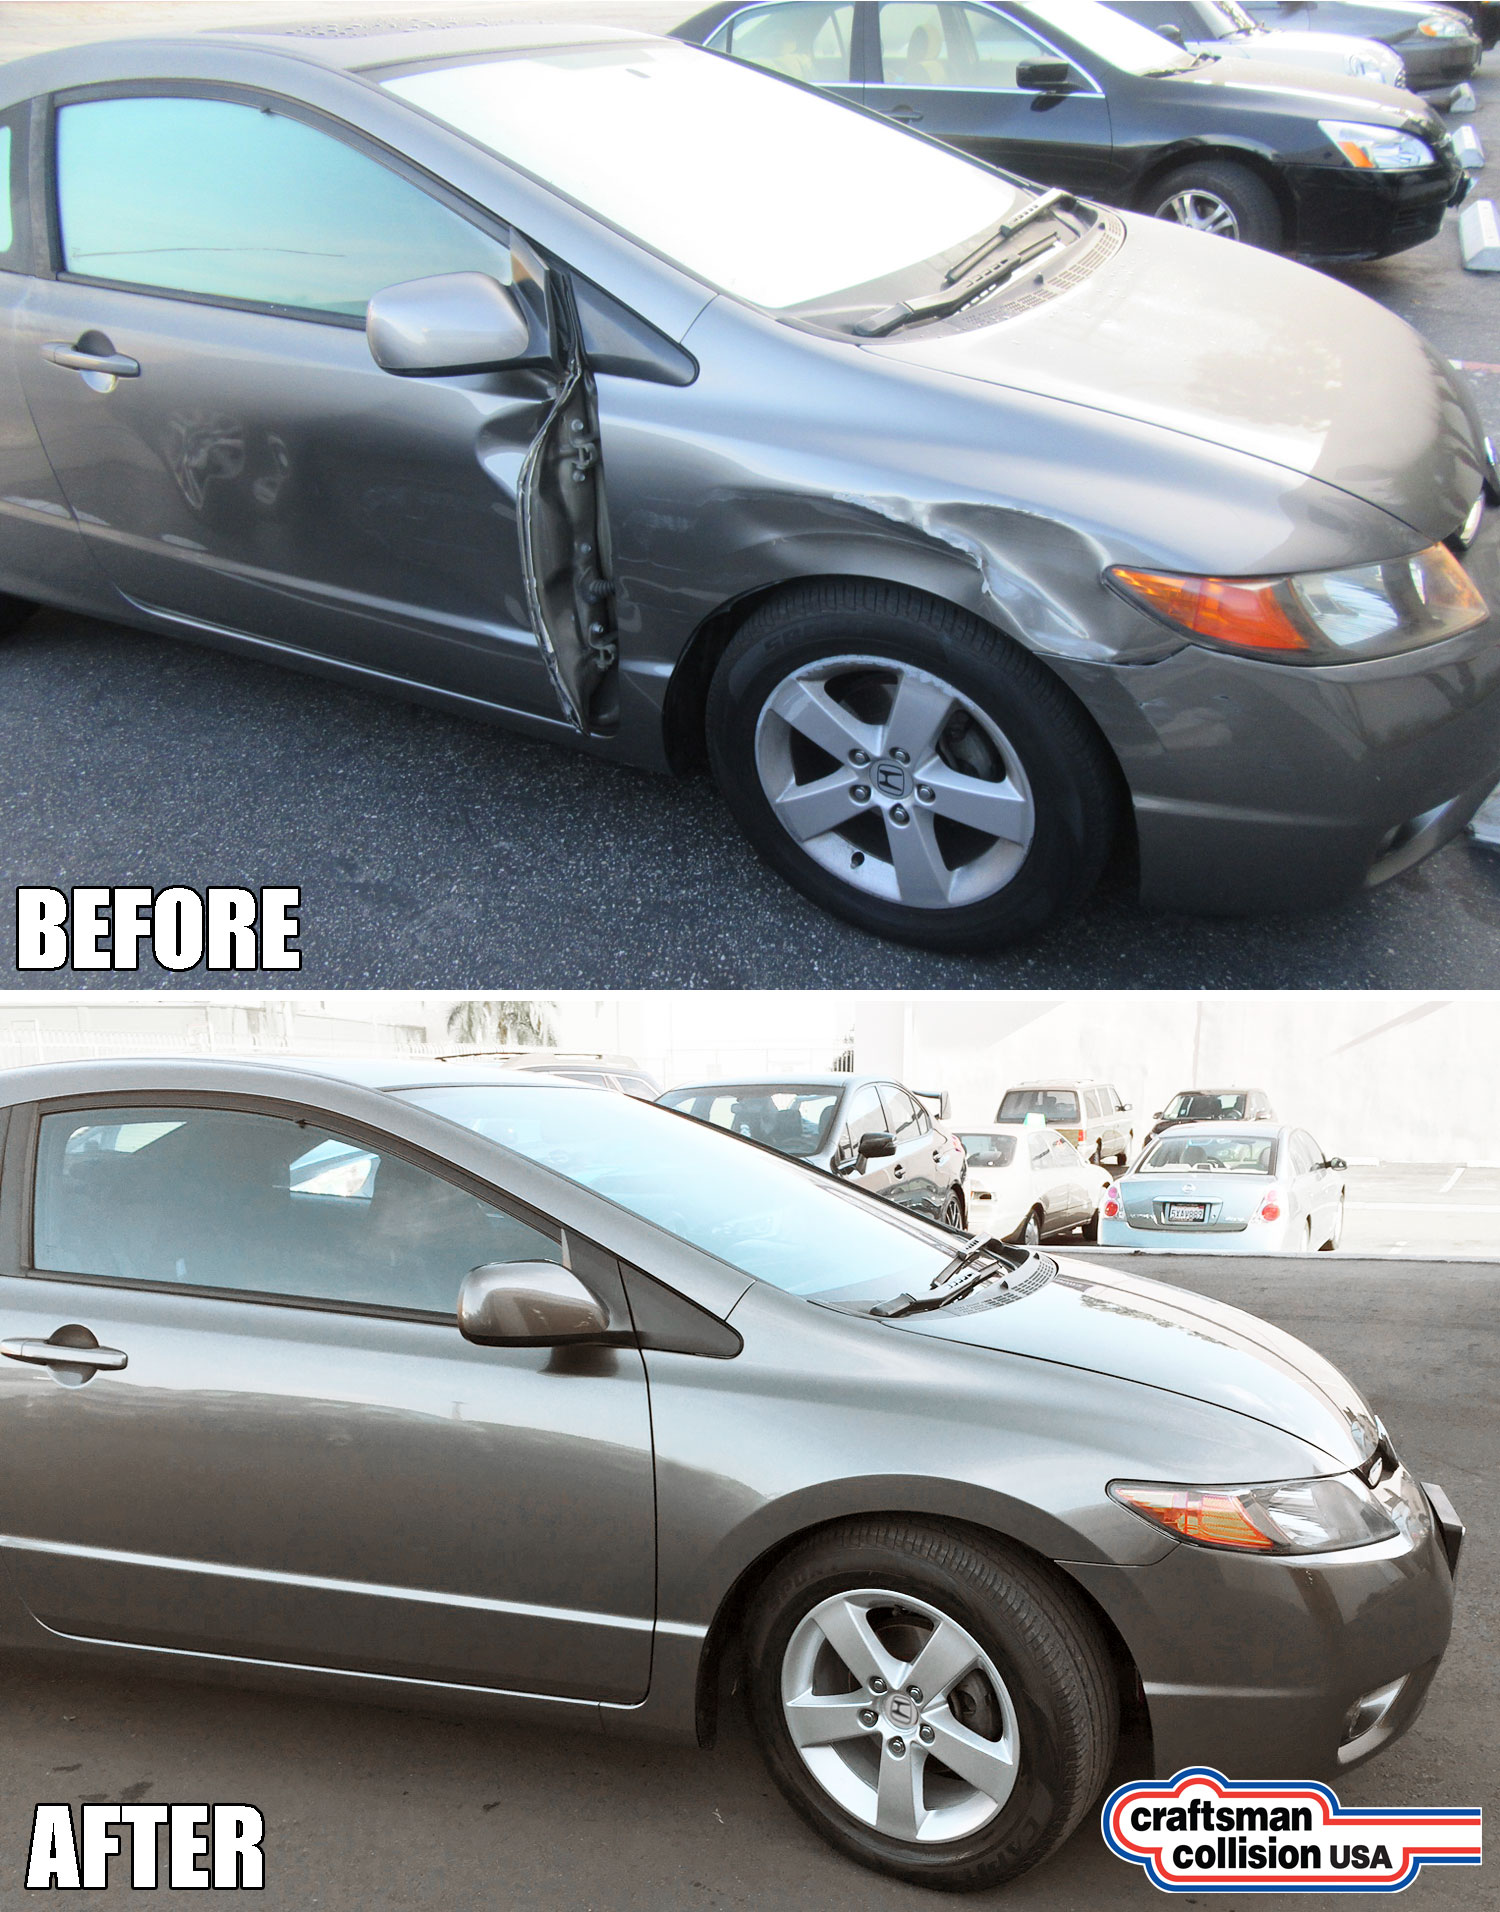 2006 Honda Civic repair